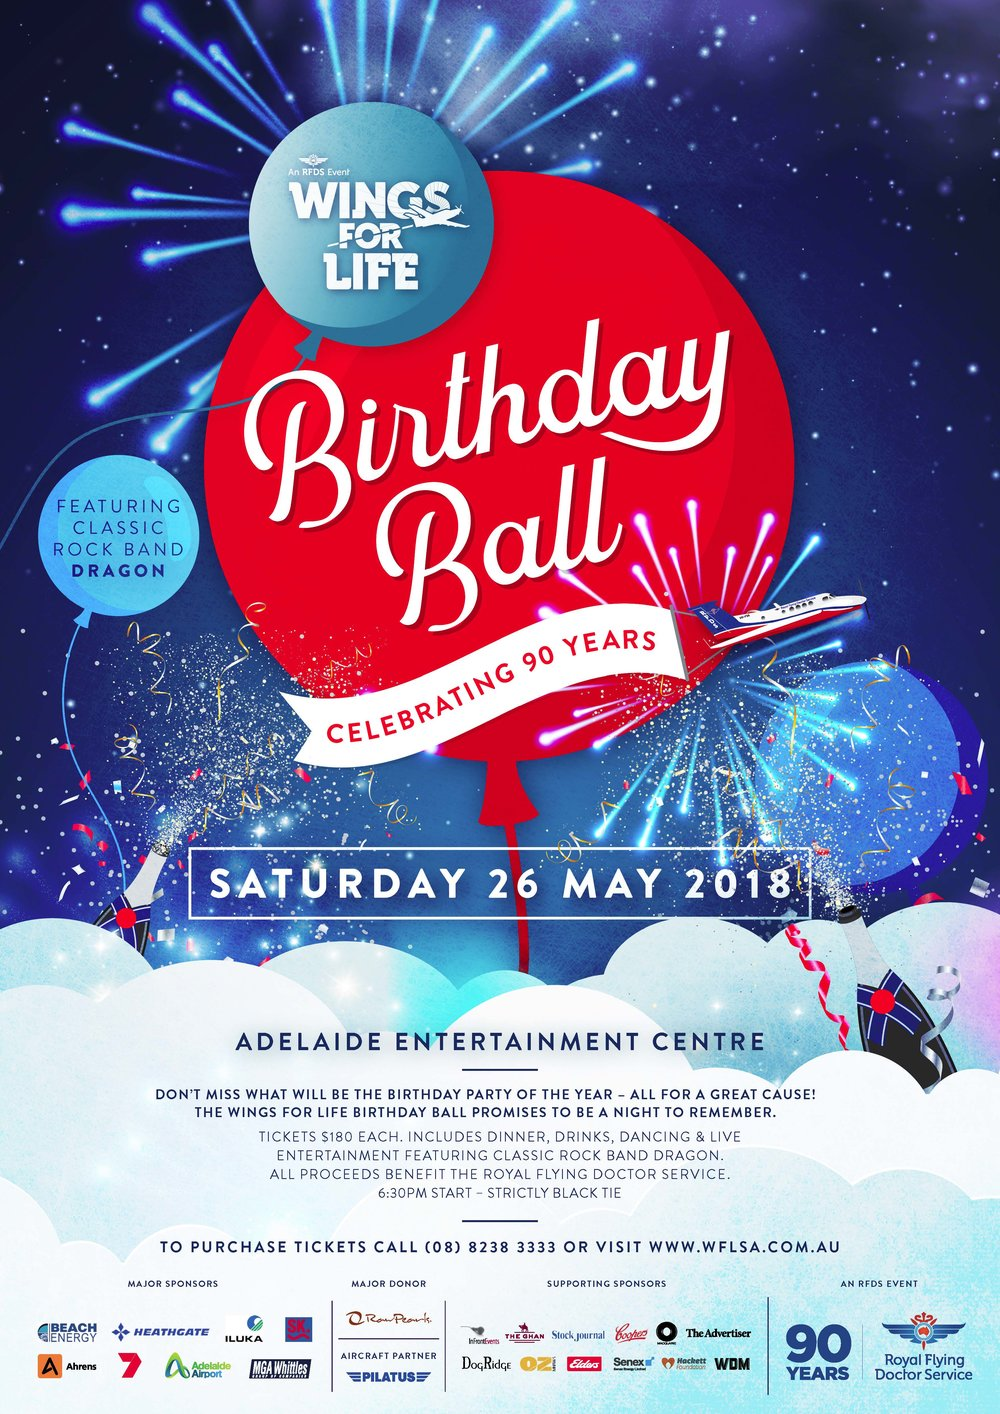 180214_Events_WFL Ball 2018_A2 Poster_FINAL.jpg